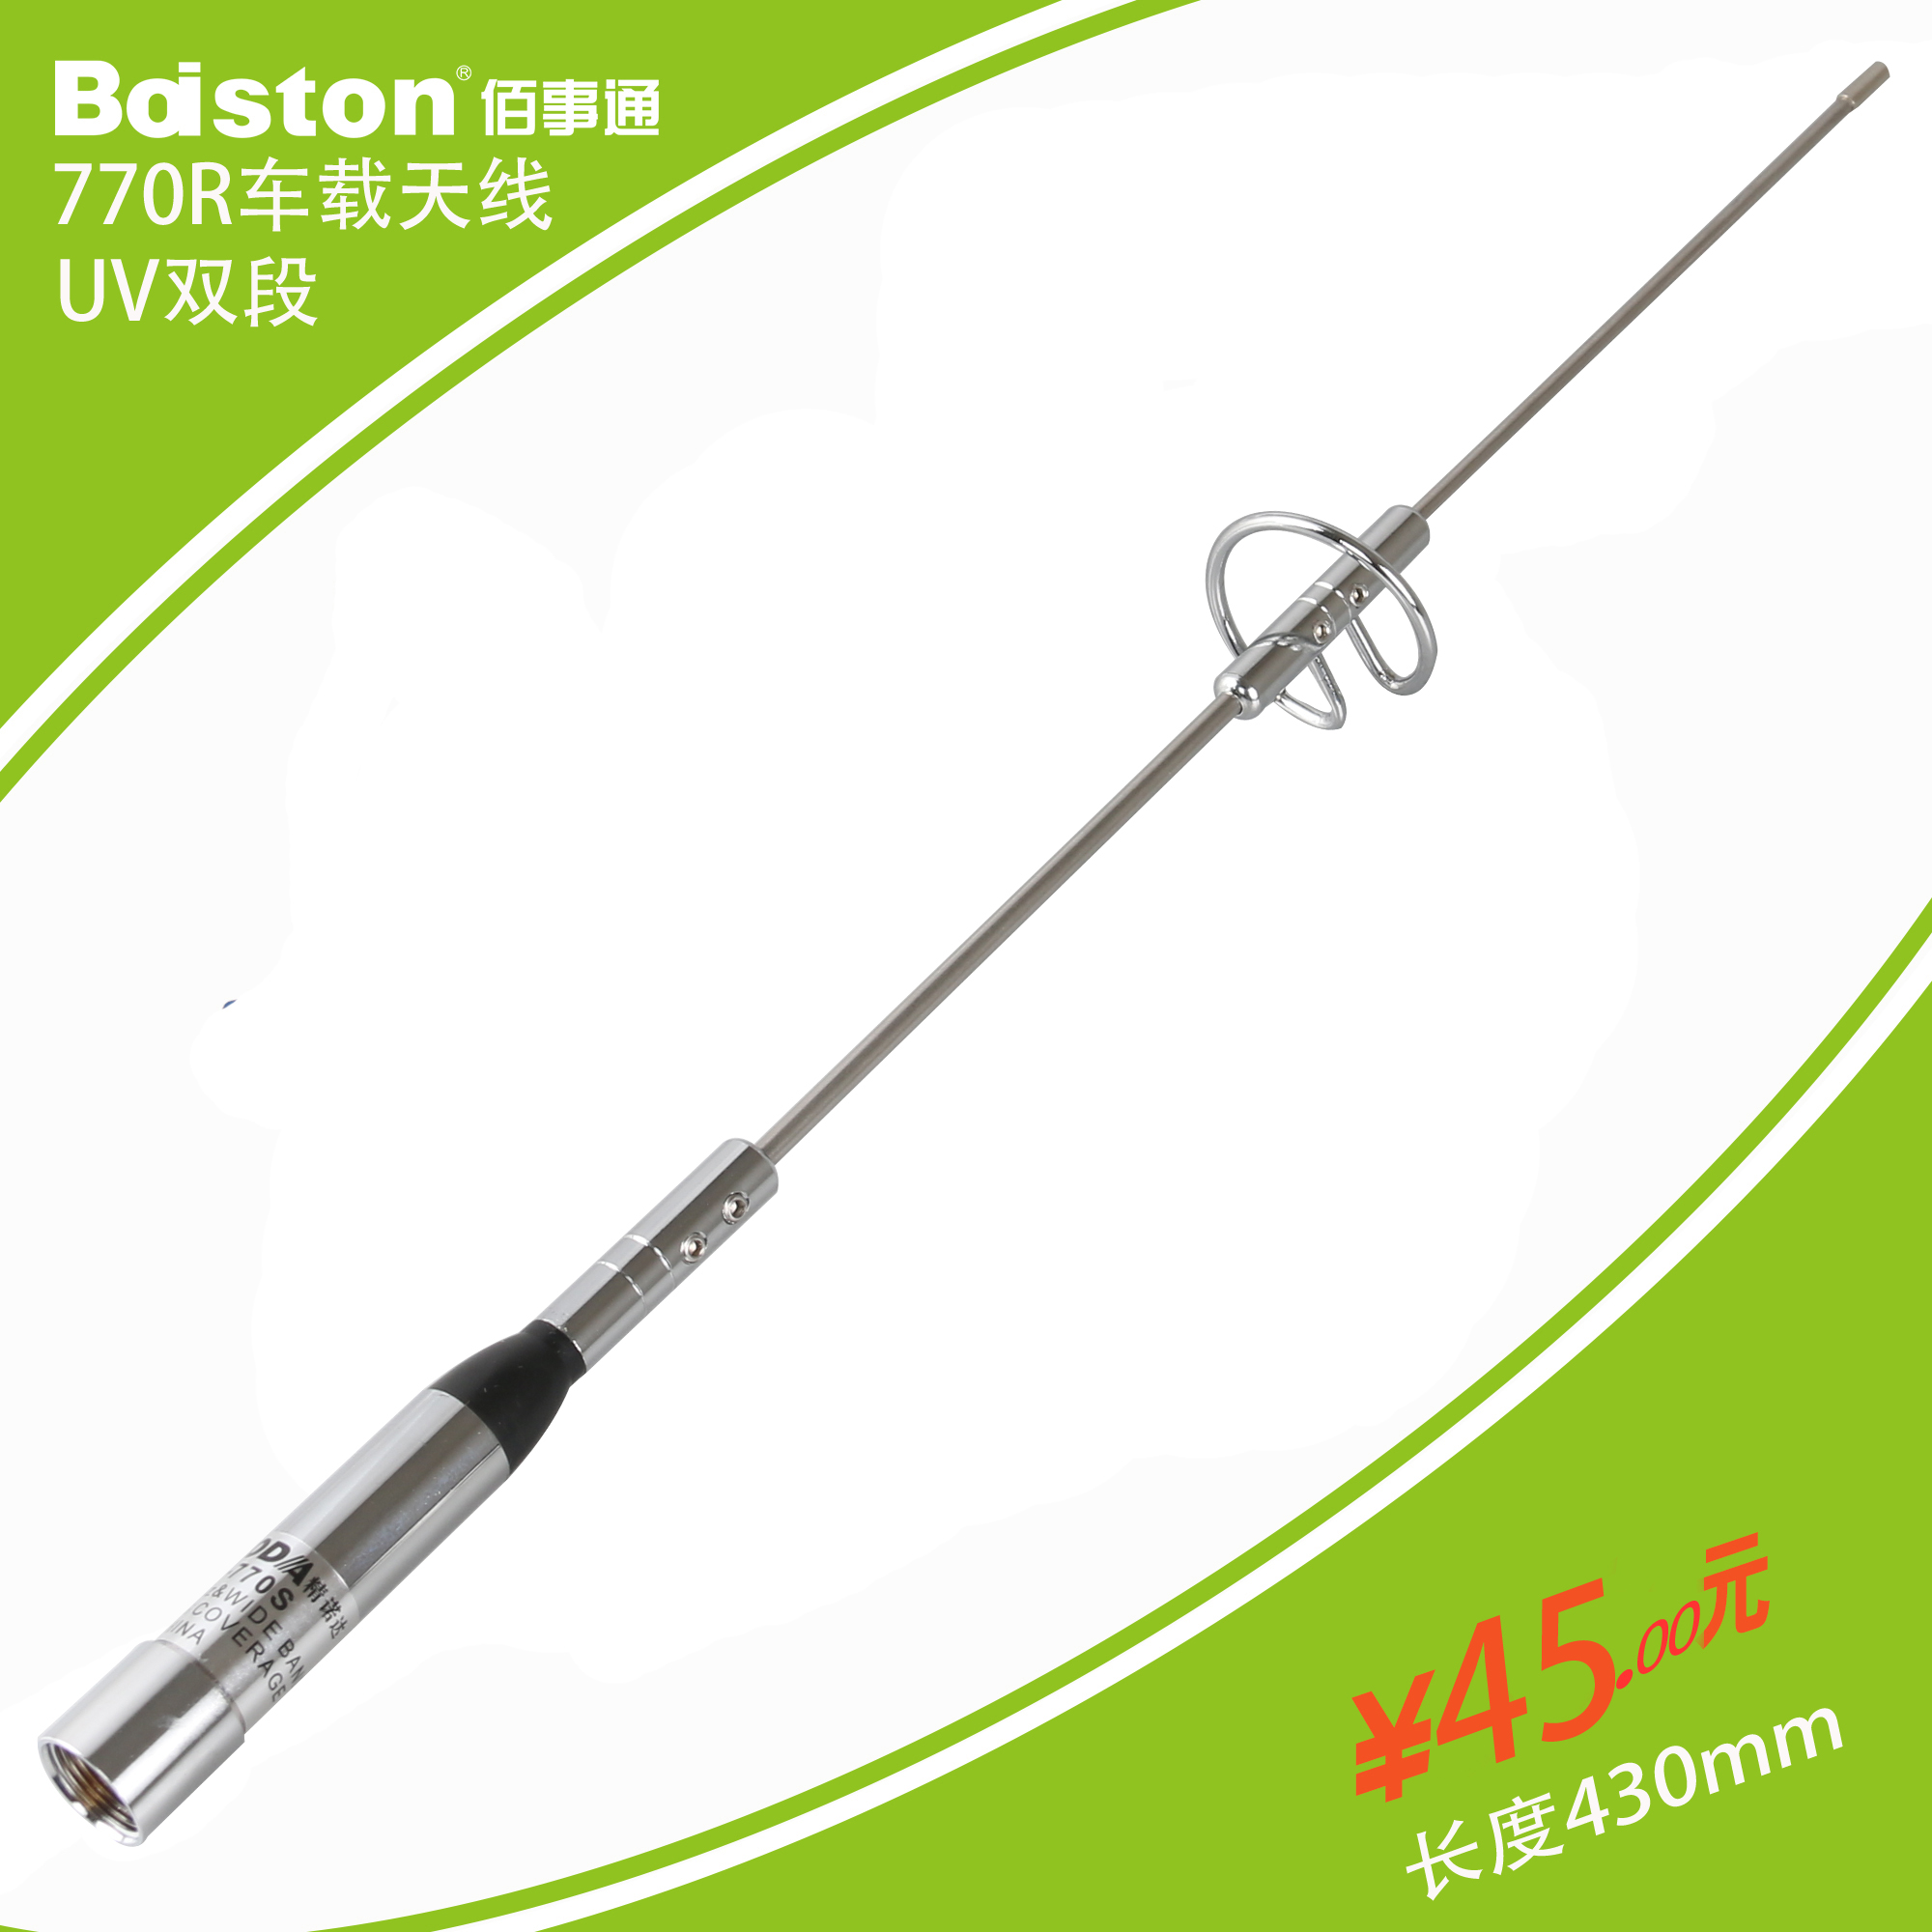 Baiston walkie talkie accessories nl-770s dual band antenna car antenna seedling 43 cm